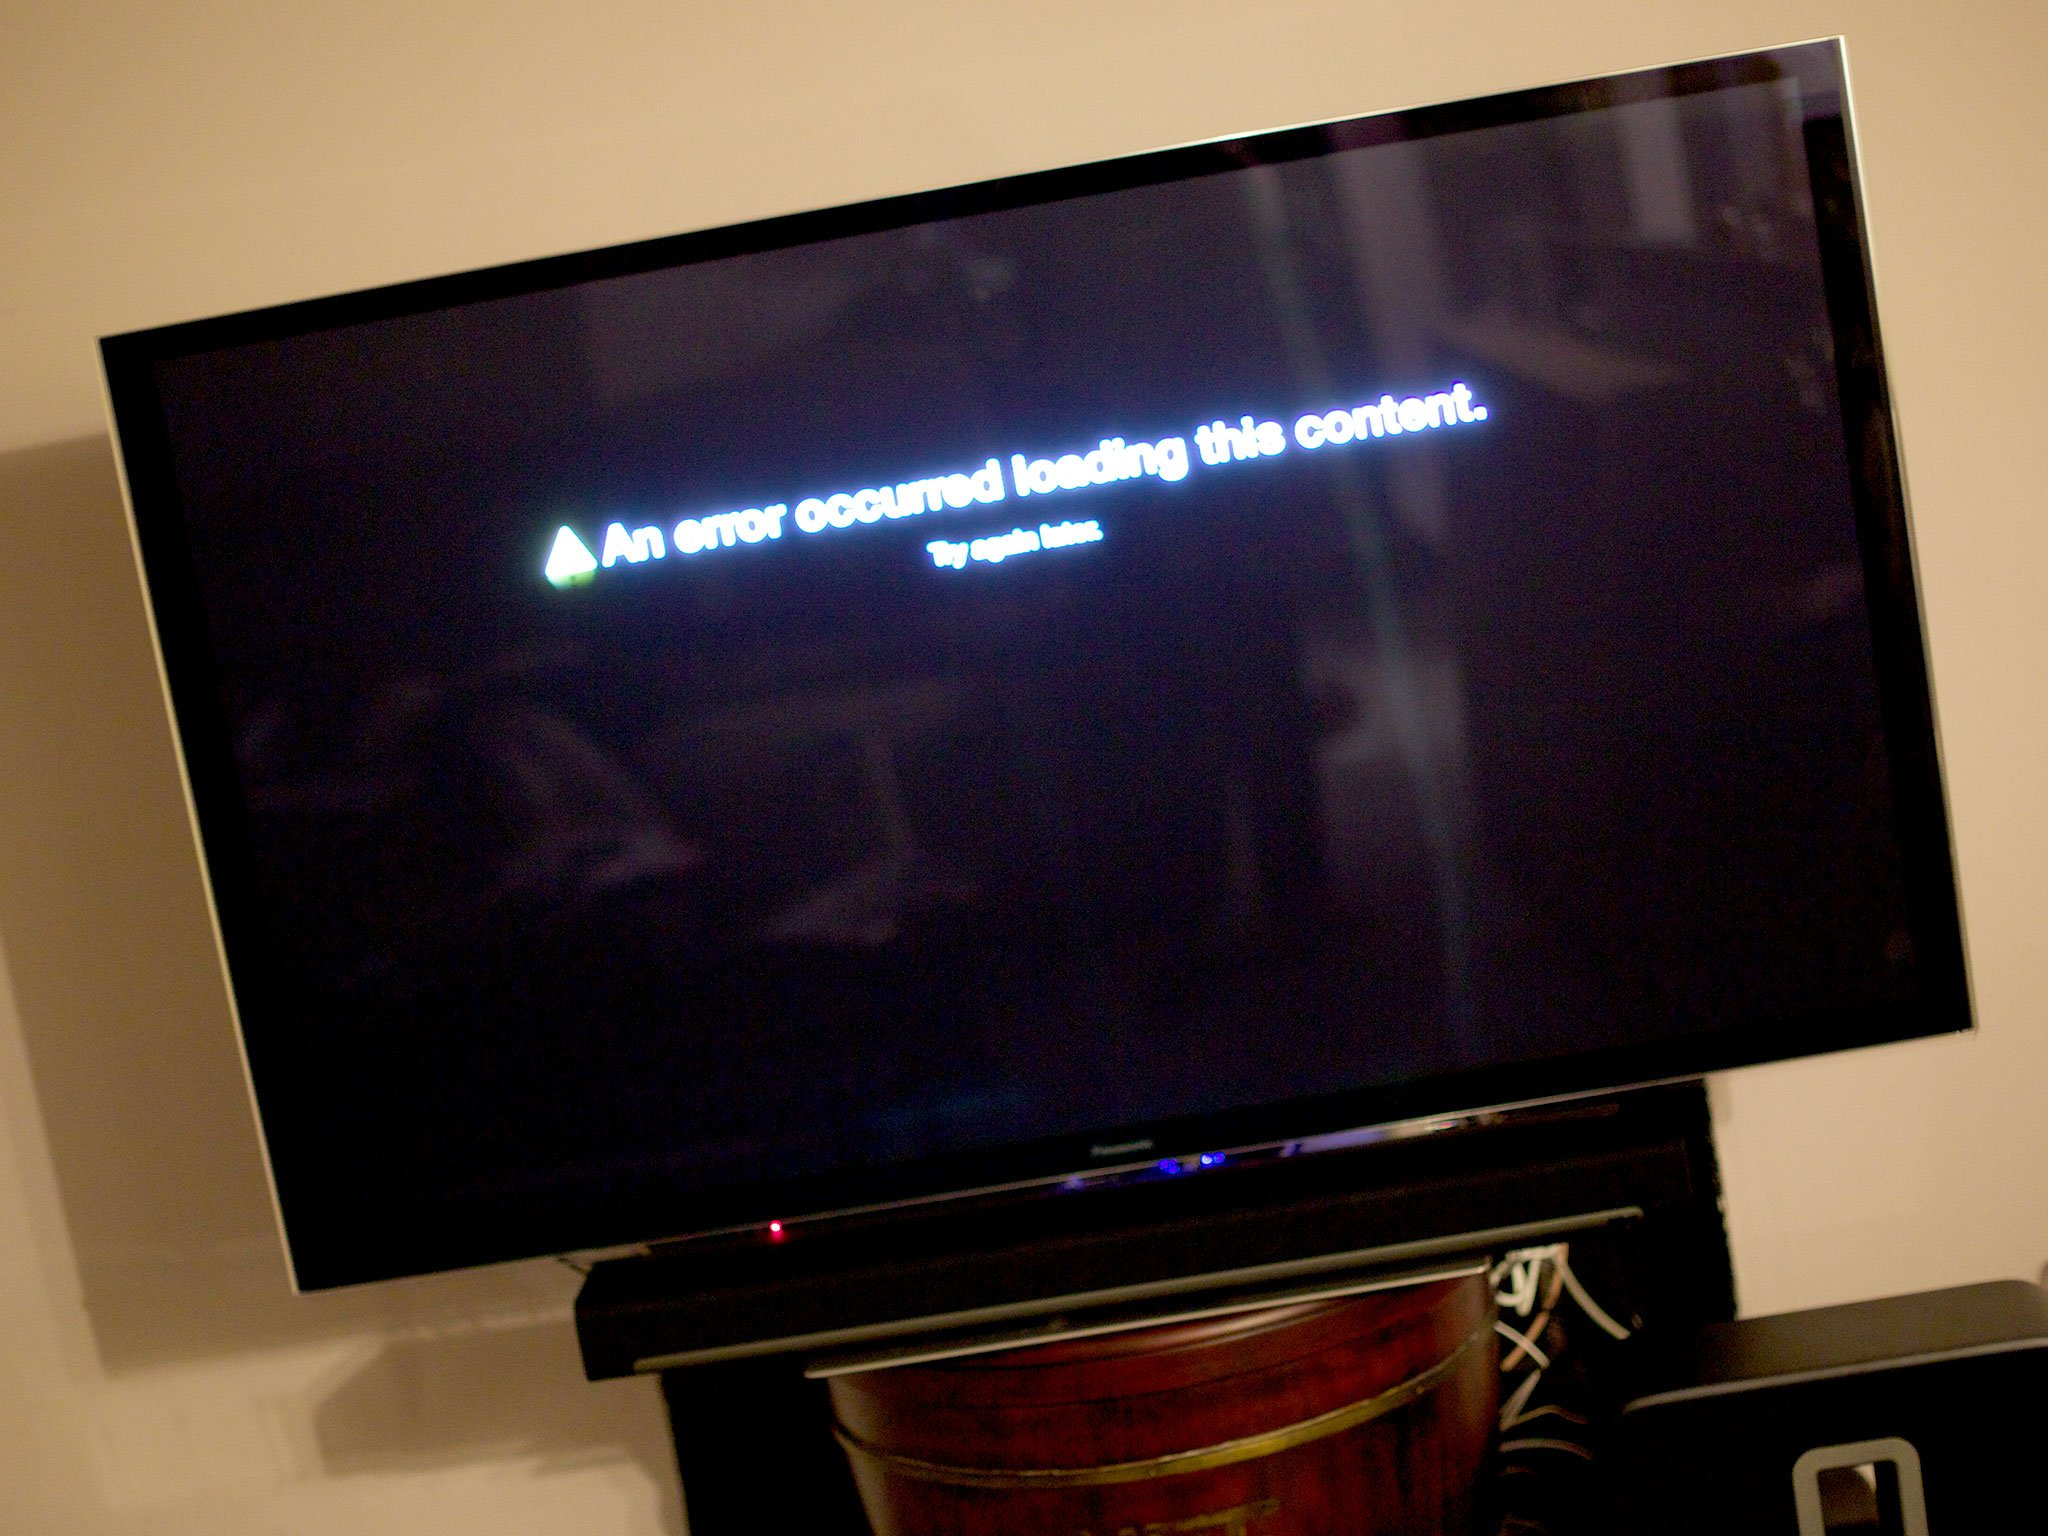 Netflix on Apple TV throwing up the dreaded 'An error occurred loading this content'? Here's how to fix it!